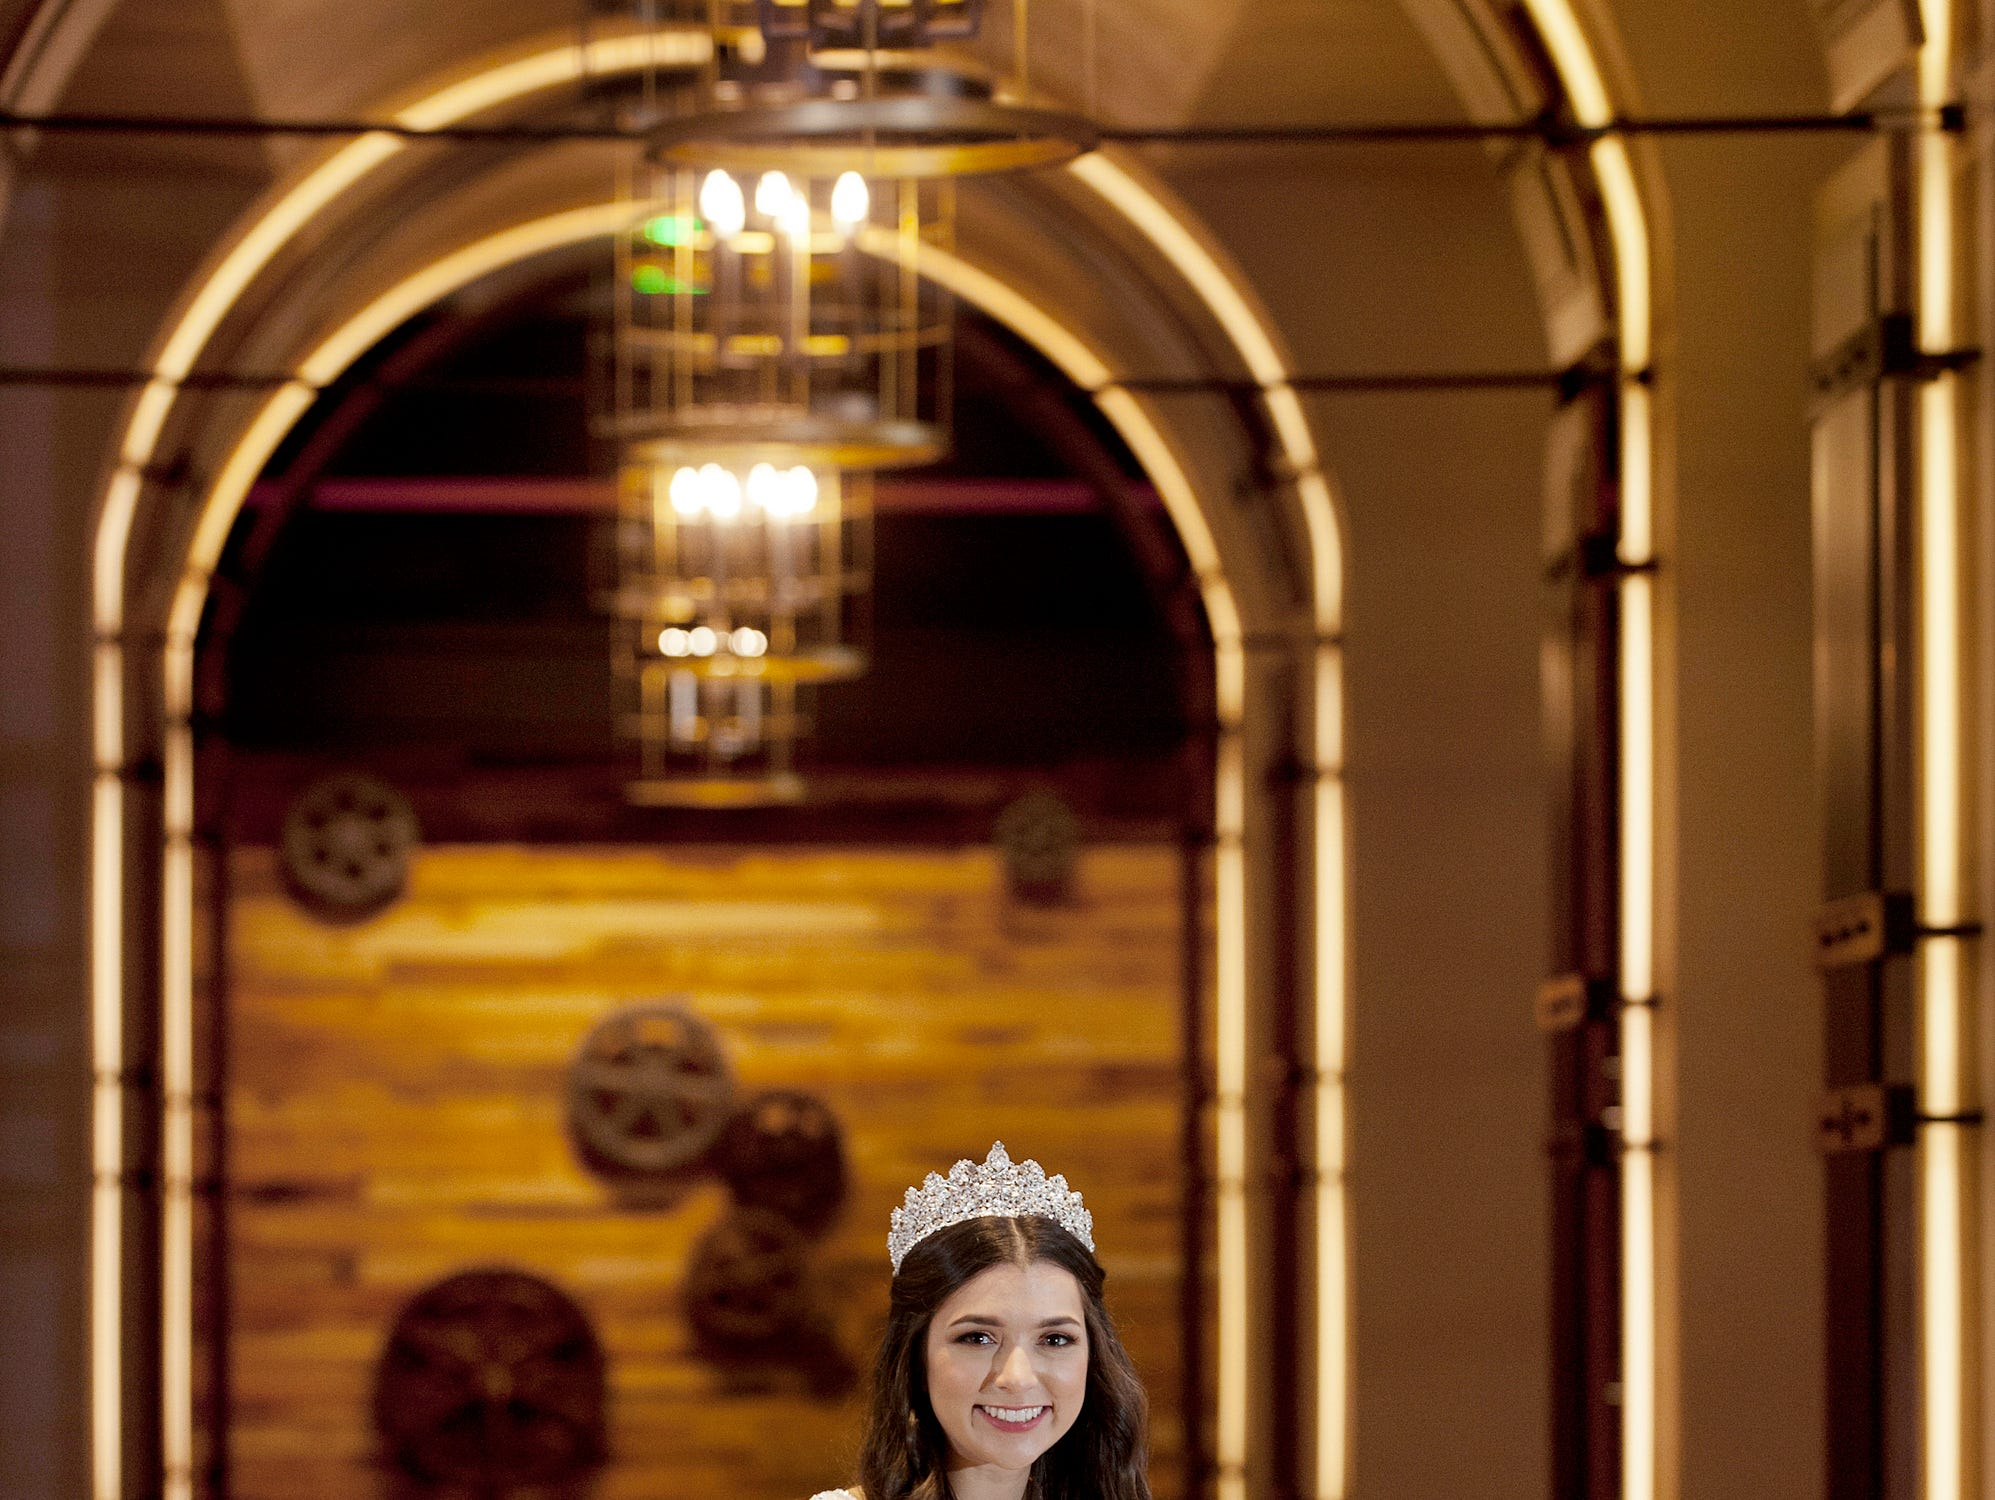 Kentucky Derby Festival Princess Mary Baker, 20, of Old Louisville, is a University of Louisville junior majoring in economics and finance. She was posing in the lobby of the Omni Louisville hotel. 06 January 2019